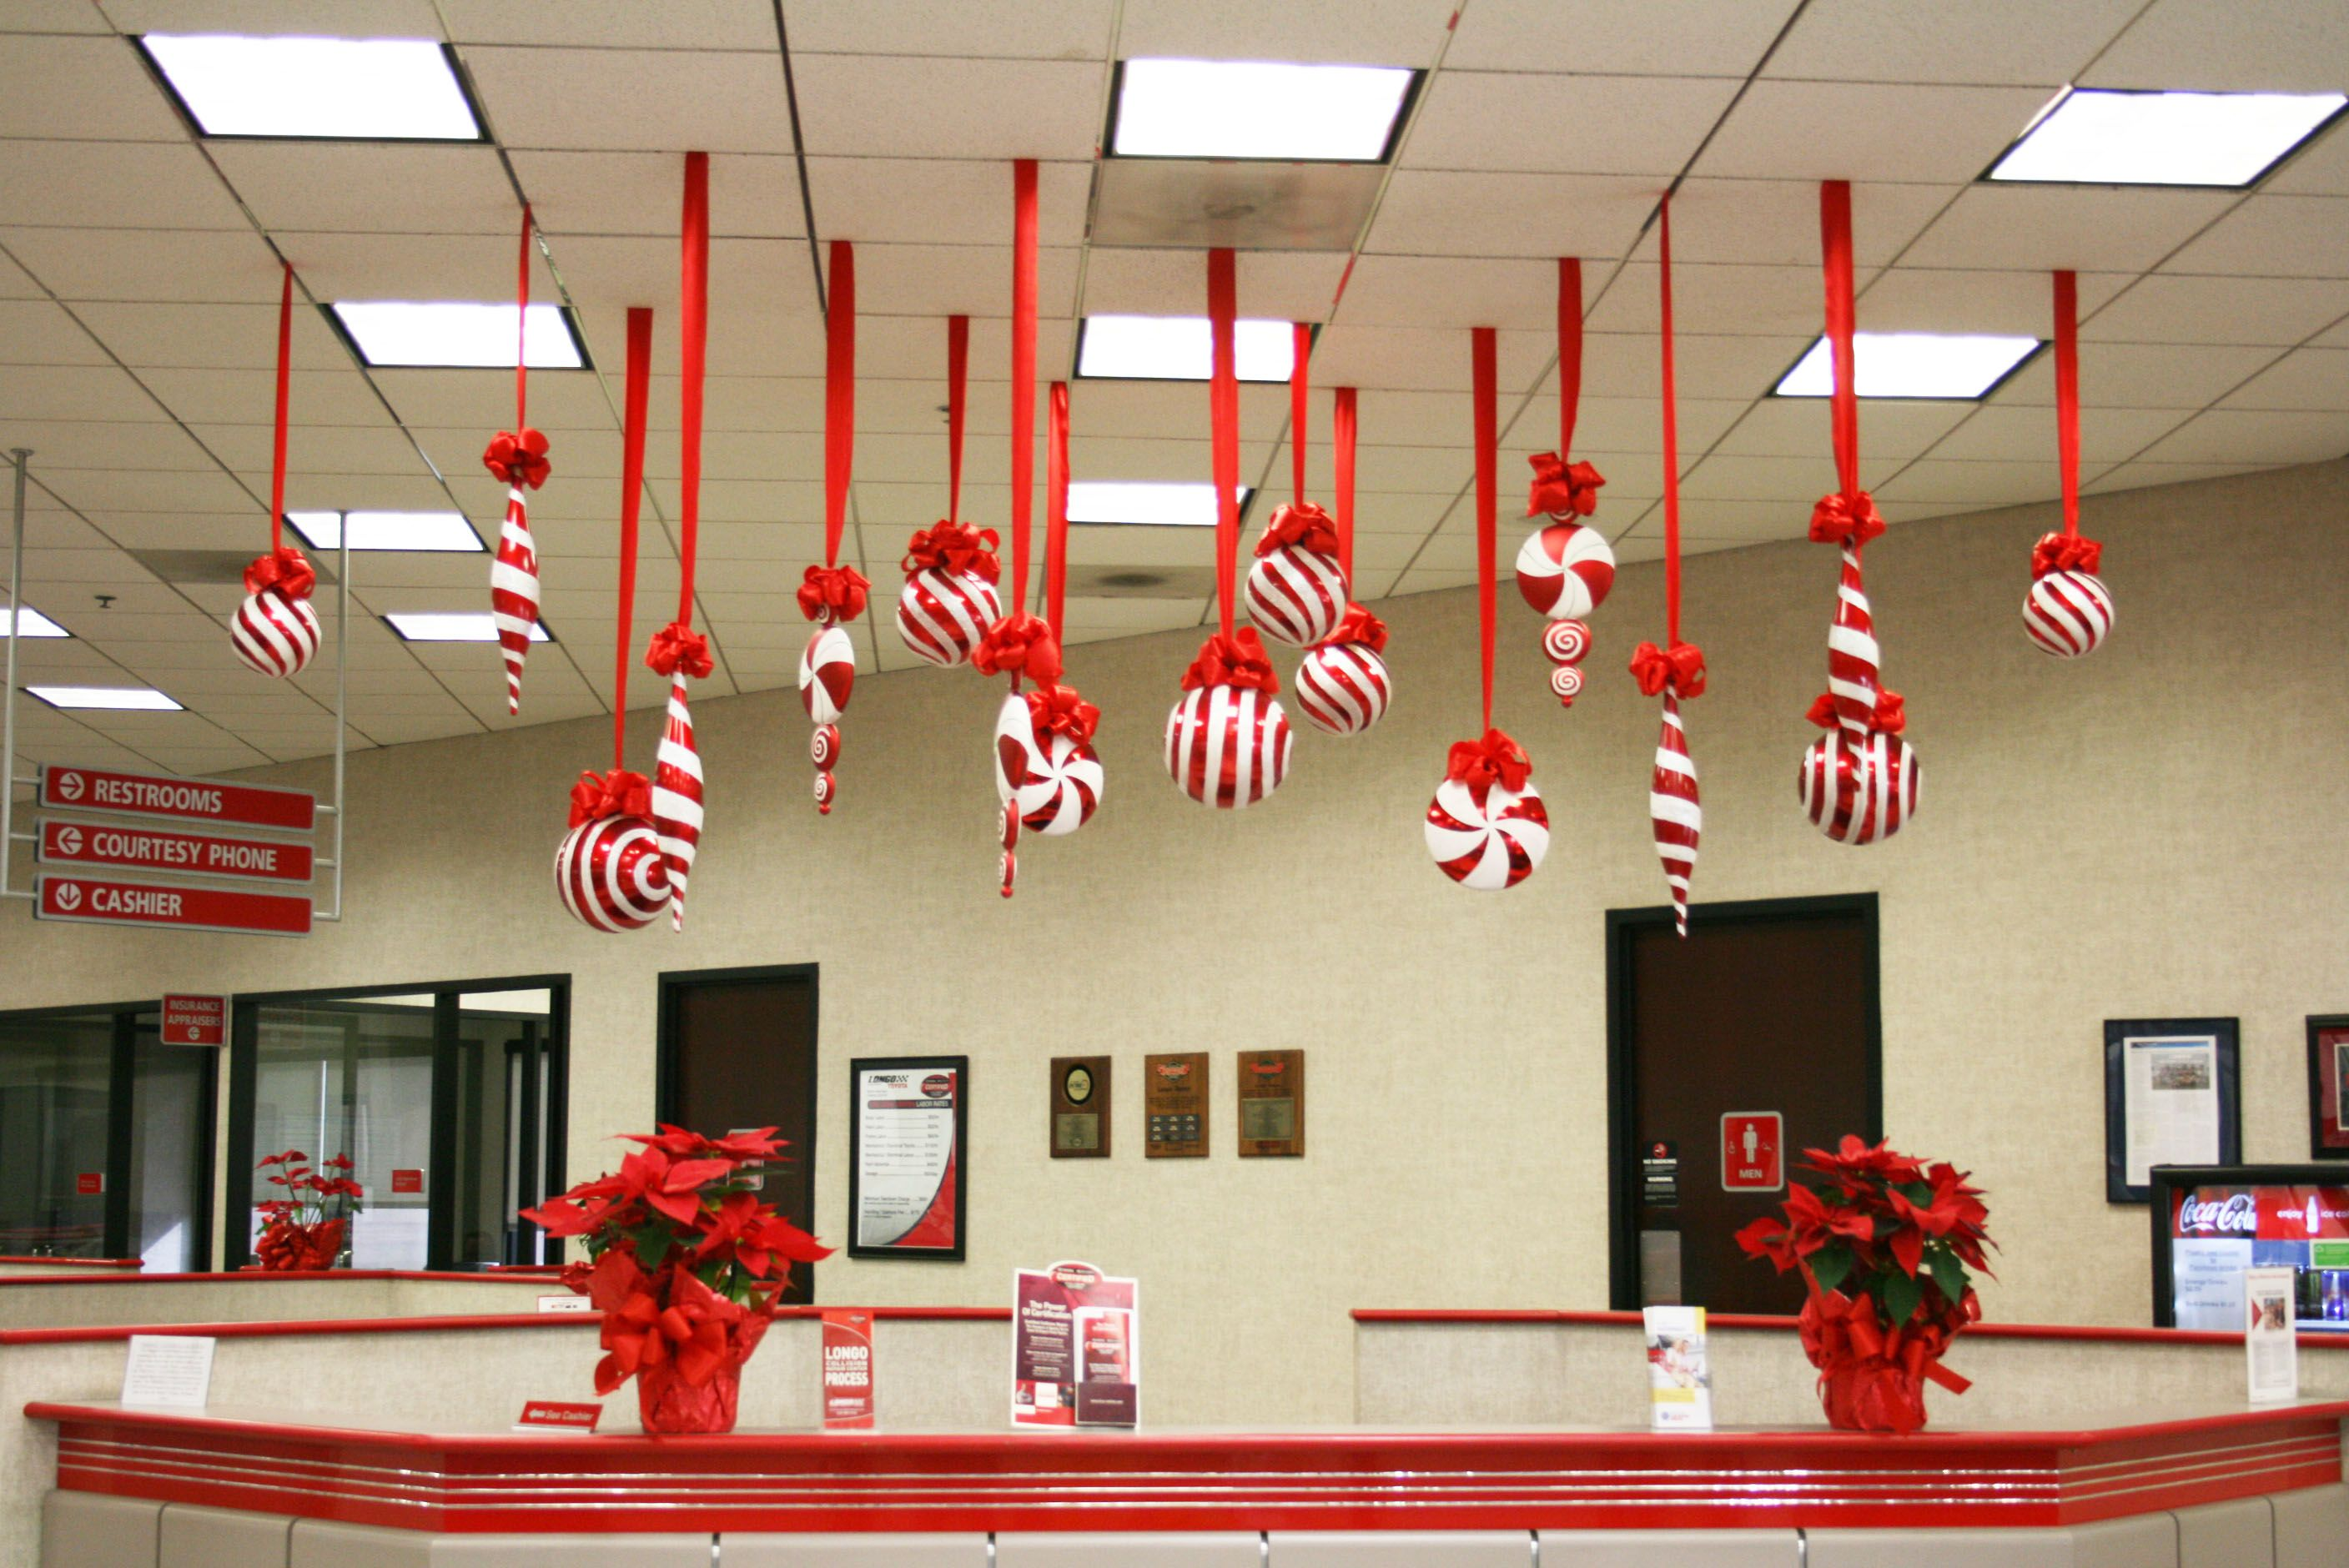 office decoration ideas op looks great for a christmas gathering entree to the supper table - Christmas Theme Office Decorating Ideas